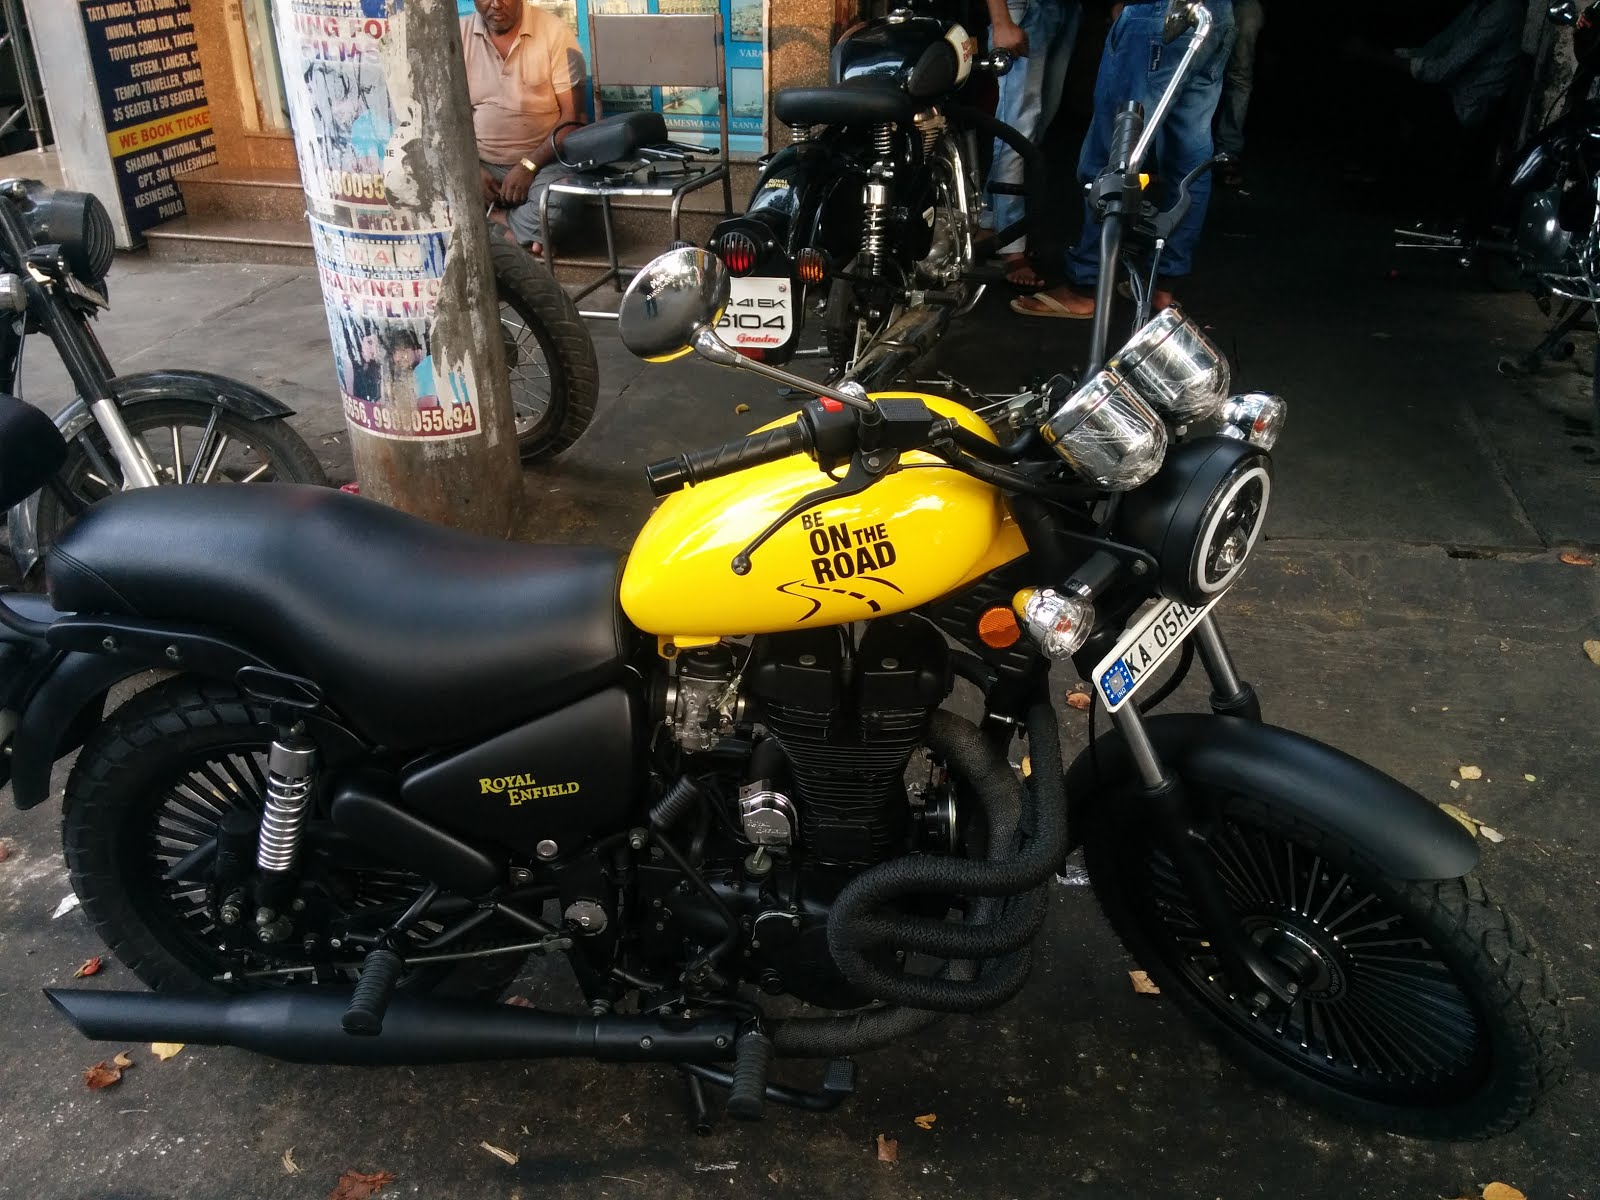 My custom yellow color Royal Enfield motorcycle